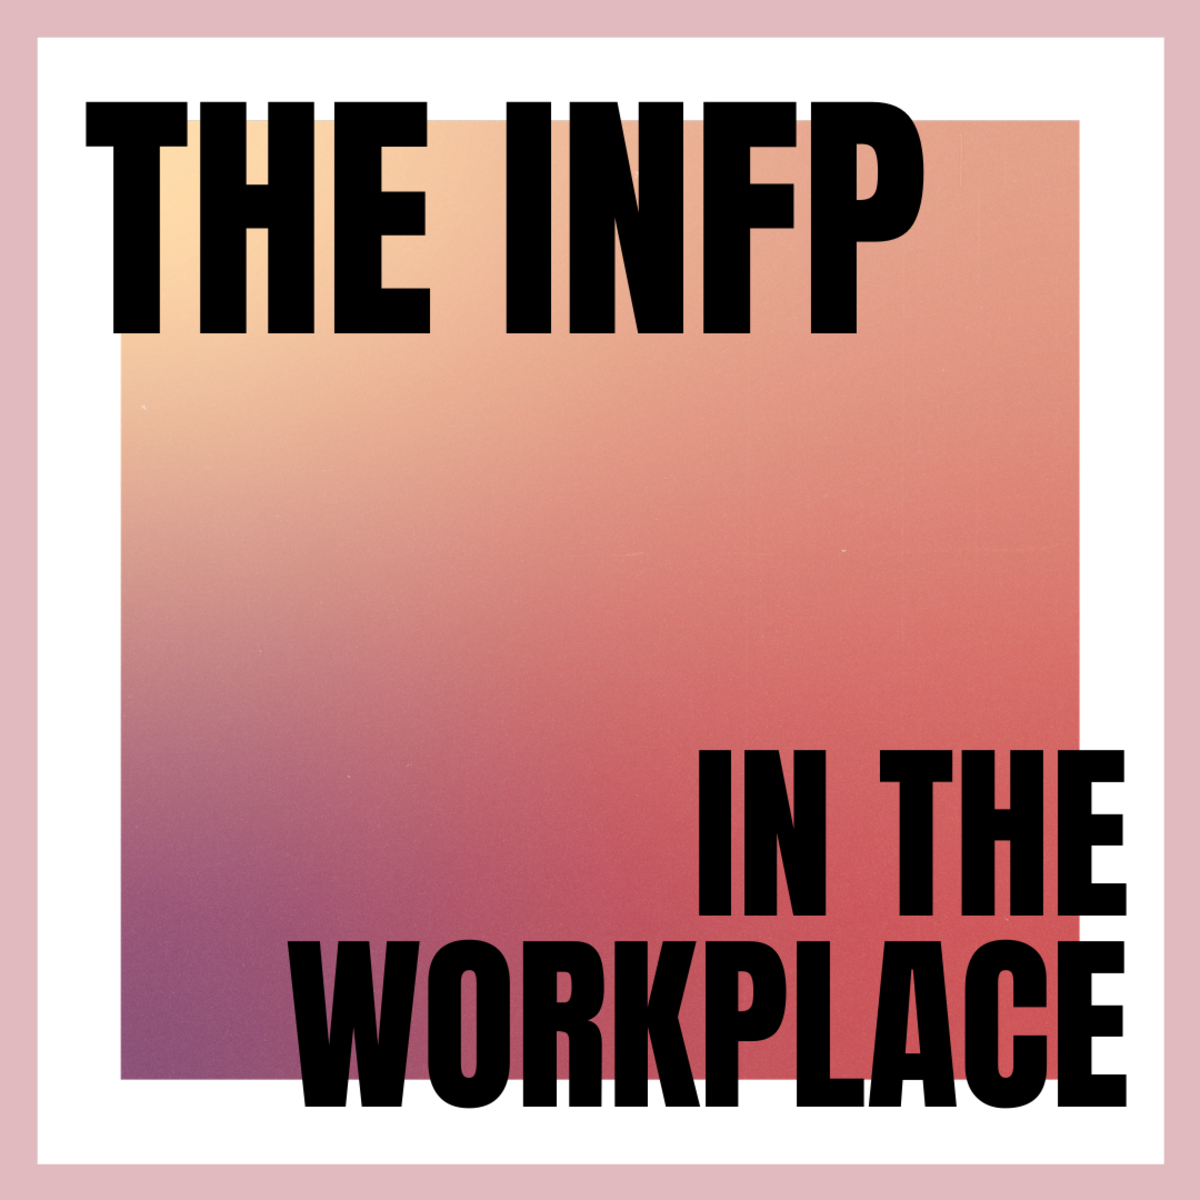 Can a dreamer have marketable skills? Learn more about the INFP personality type and how they fare in the workplace.